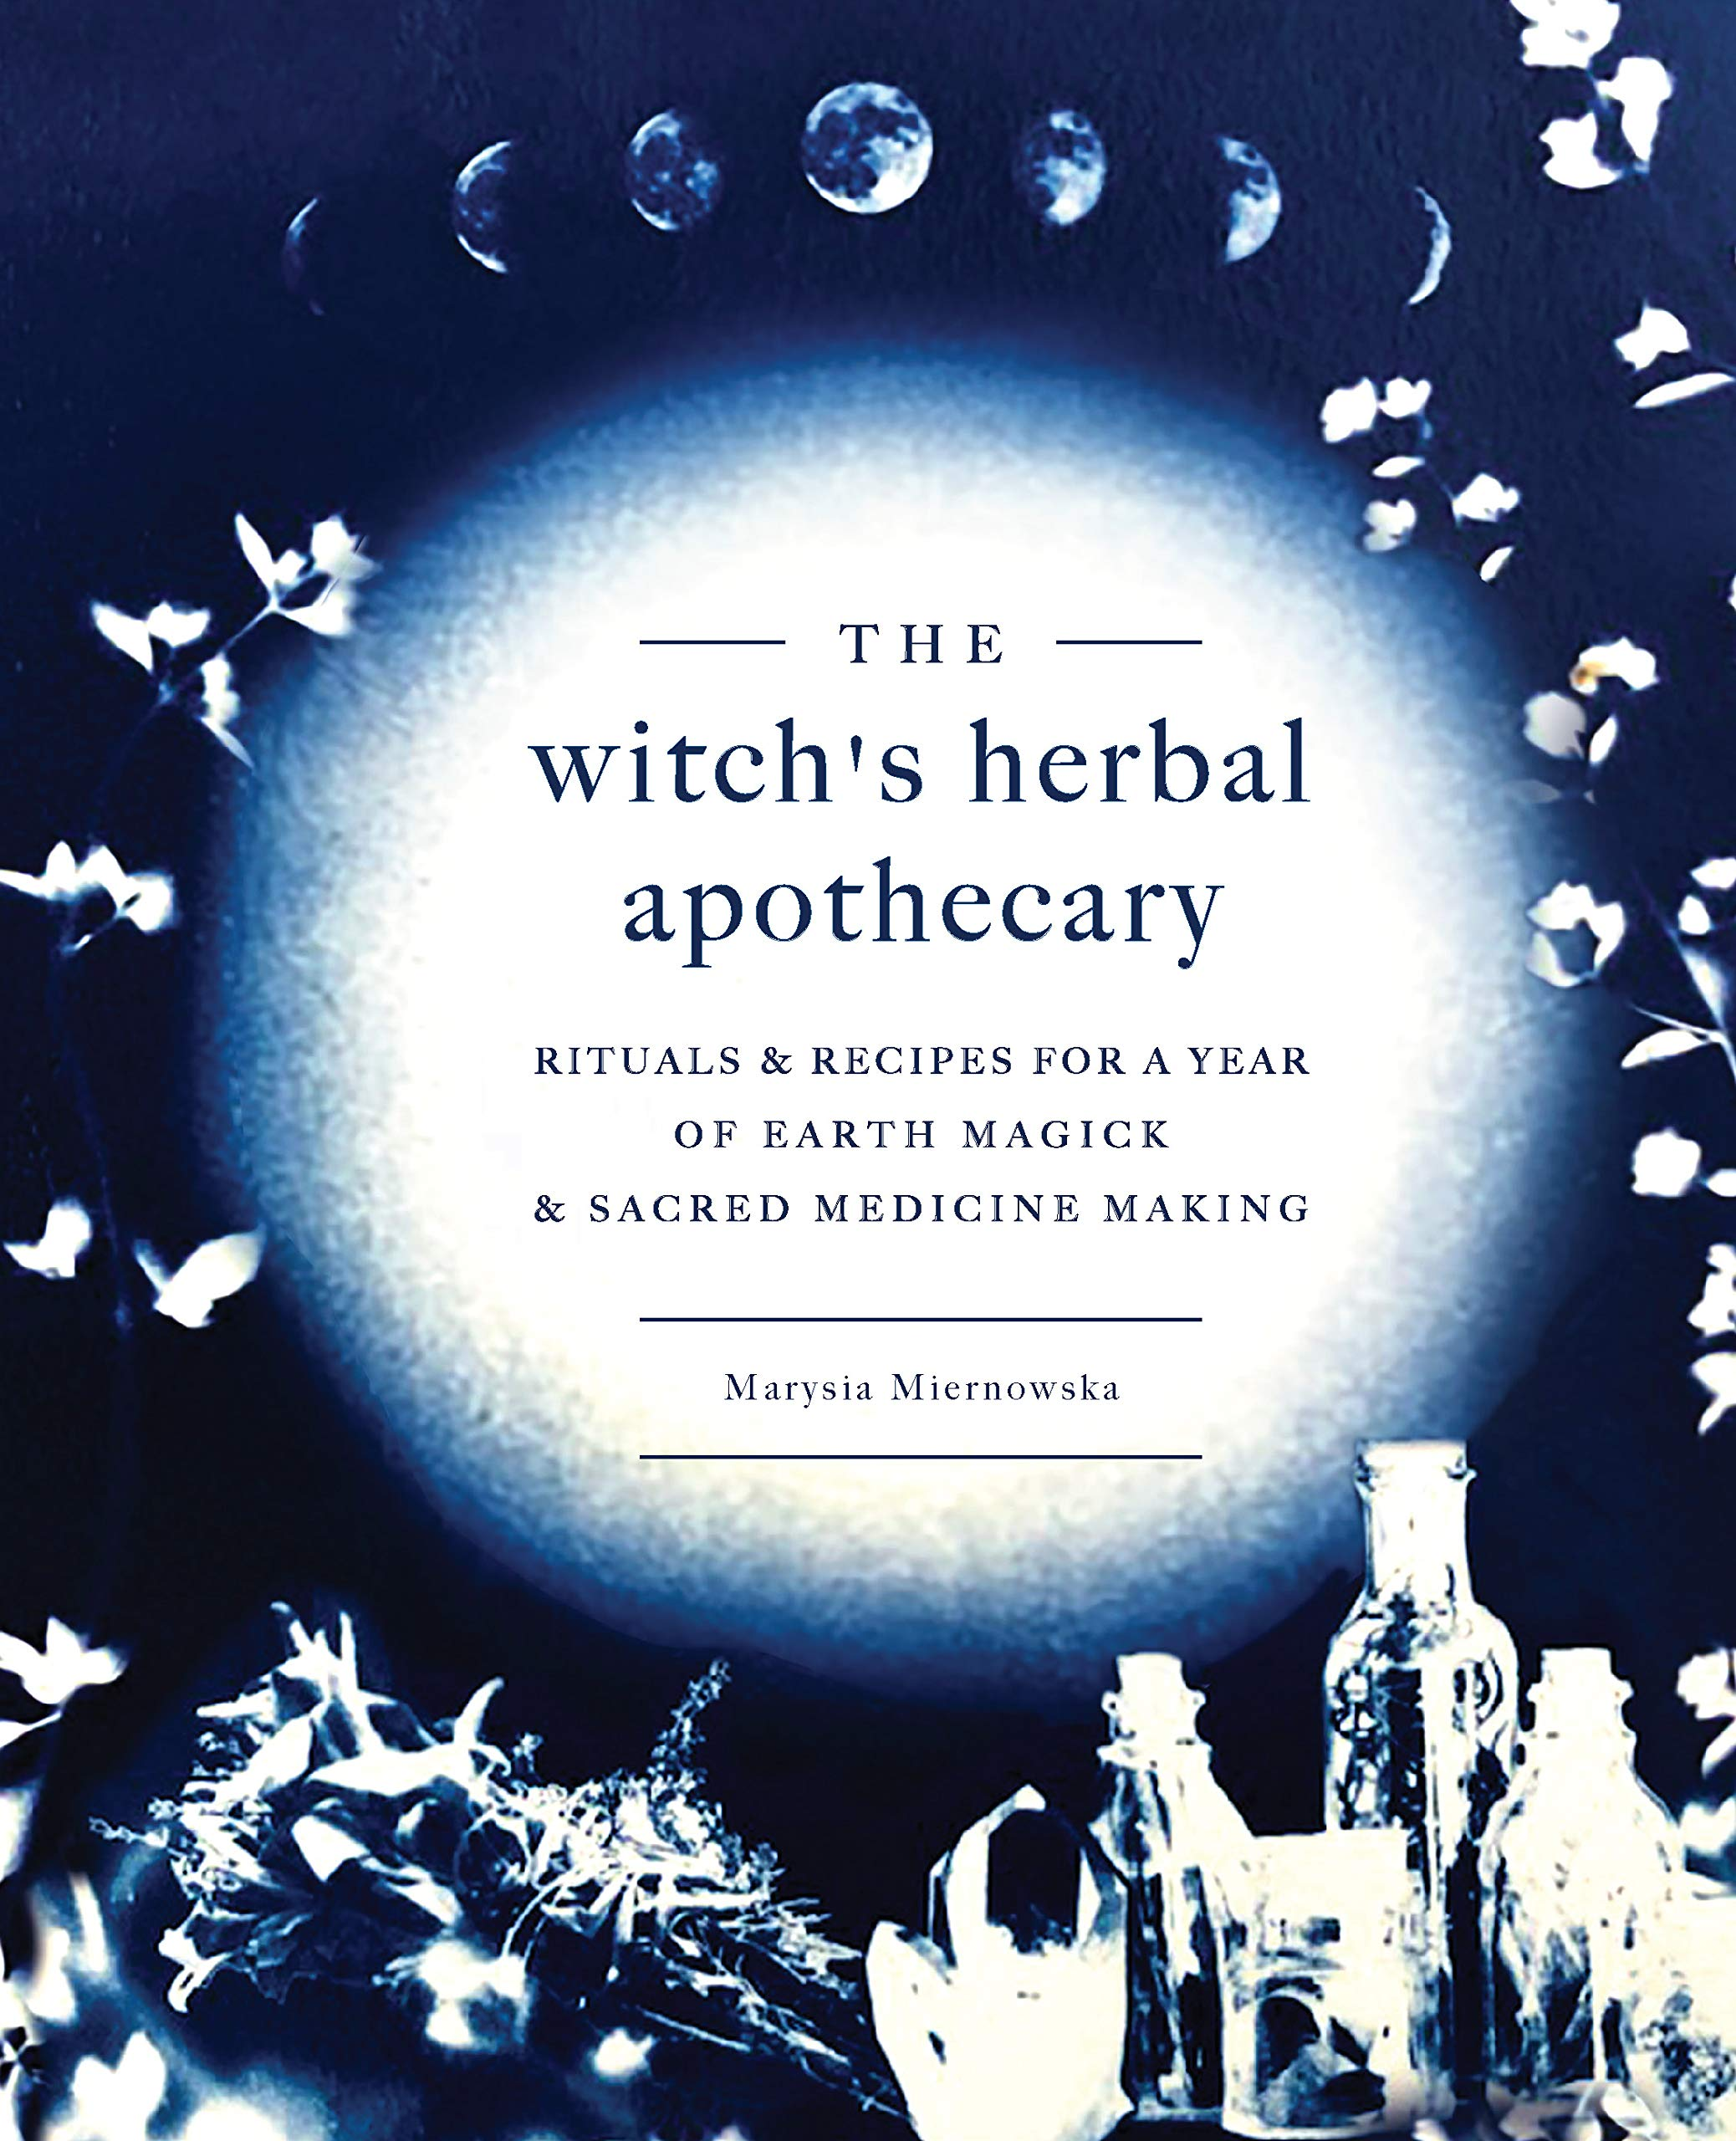 The Witch's Herbal Apothecary: Rituals & Recipes for a Year